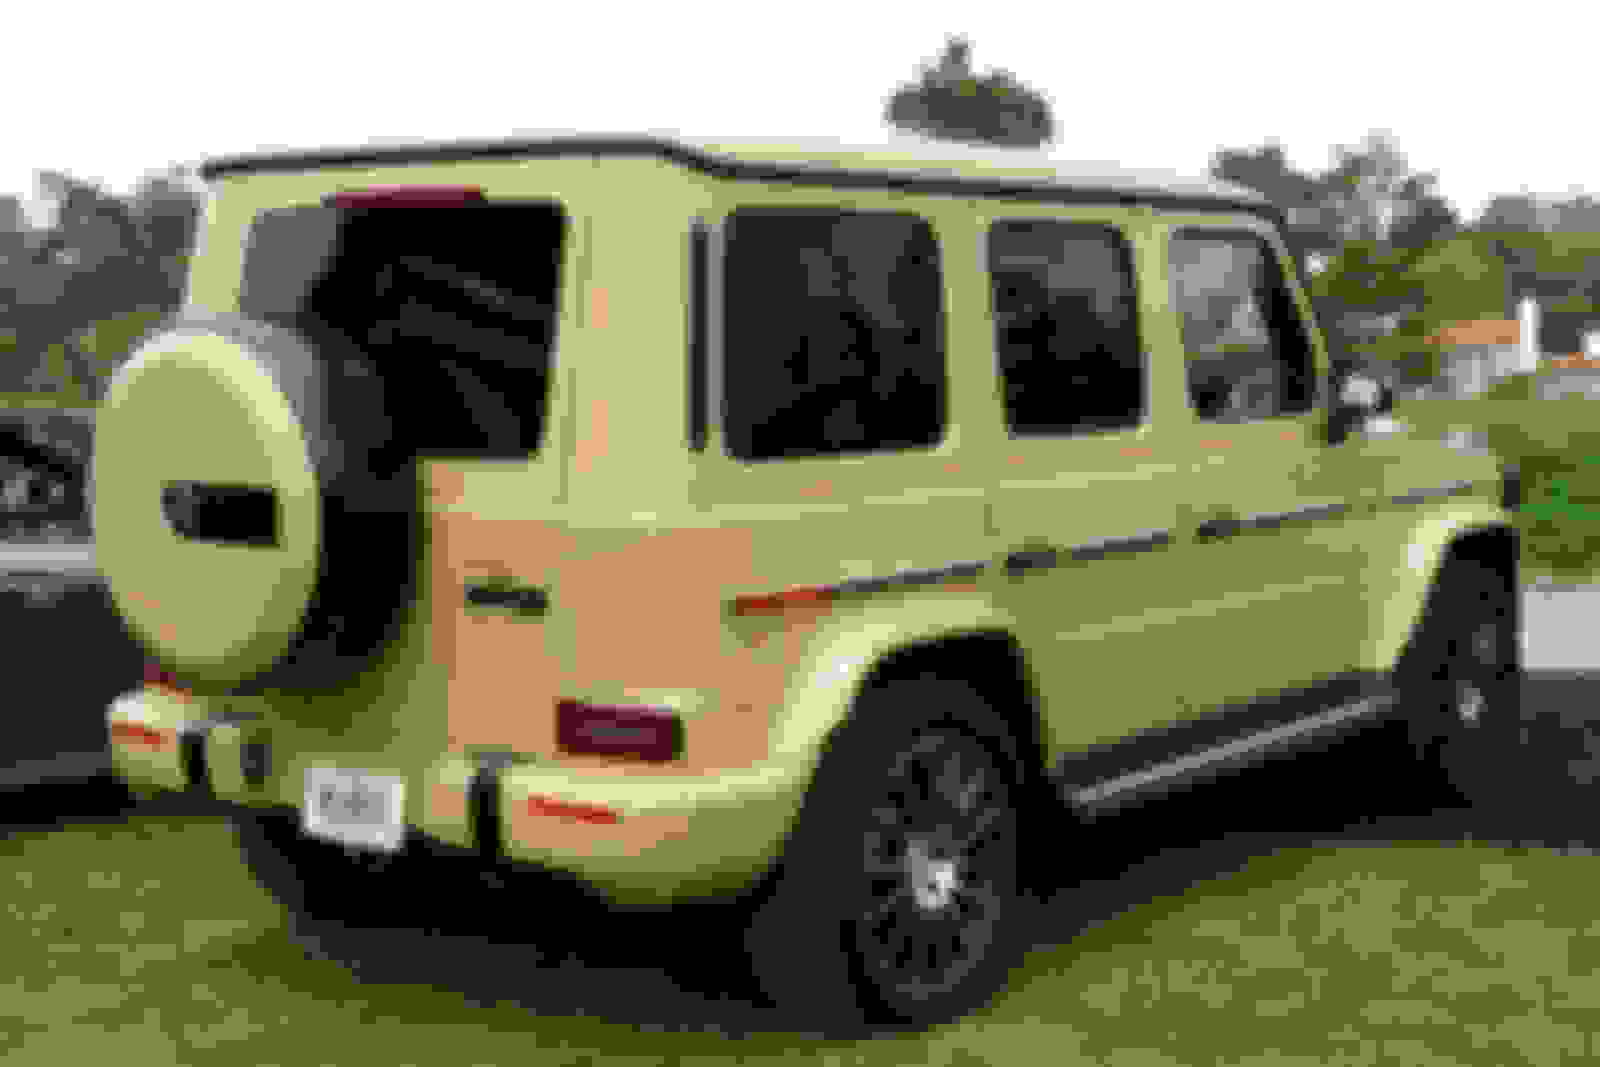 2019 G550 AND G63 PRICE? - Page 4 - MBWorld org Forums